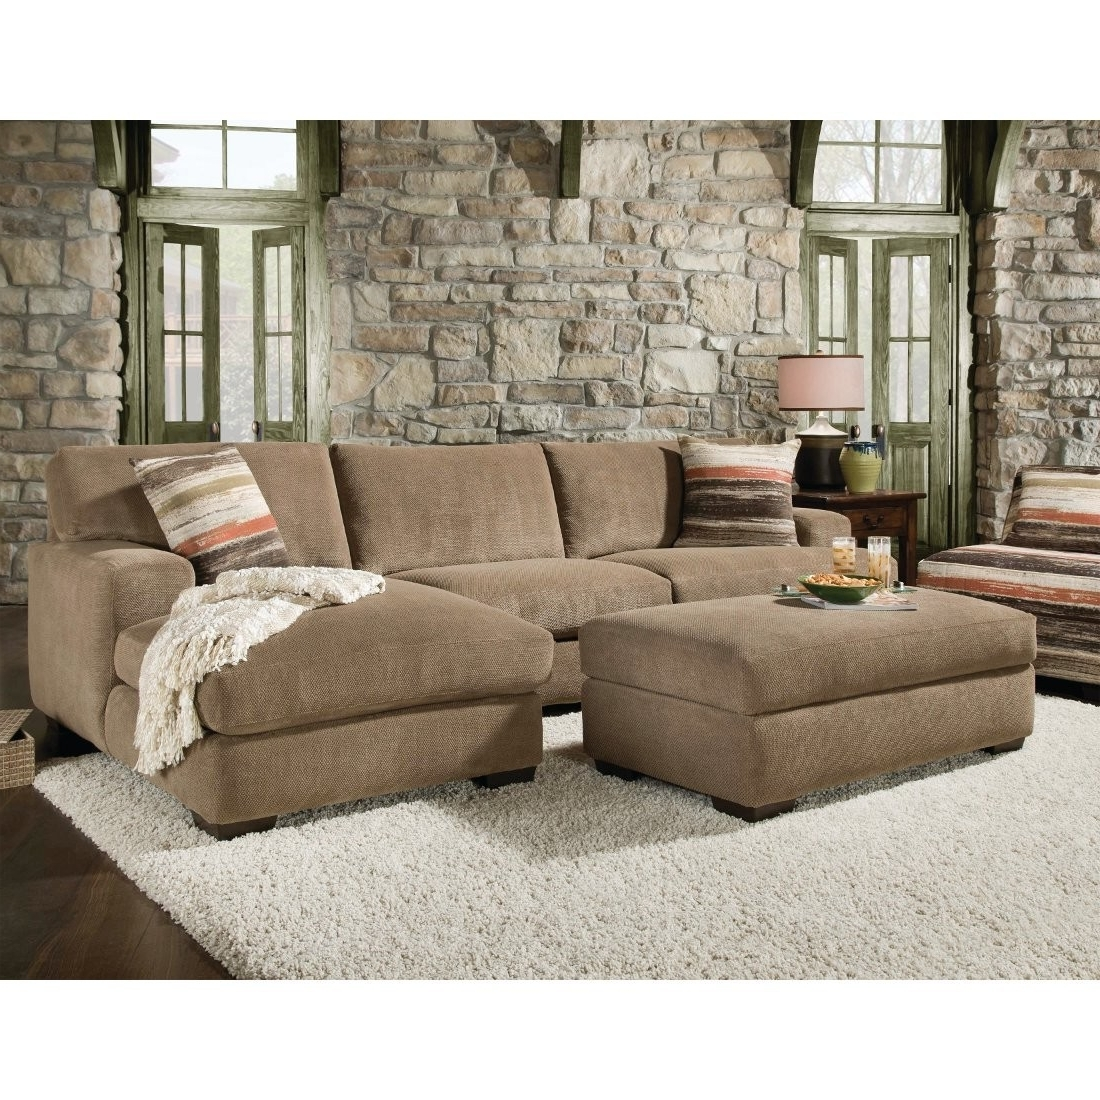 Sofa Chaise Sectionals Intended For Well Known Beautiful Sectional Sofa With Chaise And Ottoman Pictures (View 3 of 15)